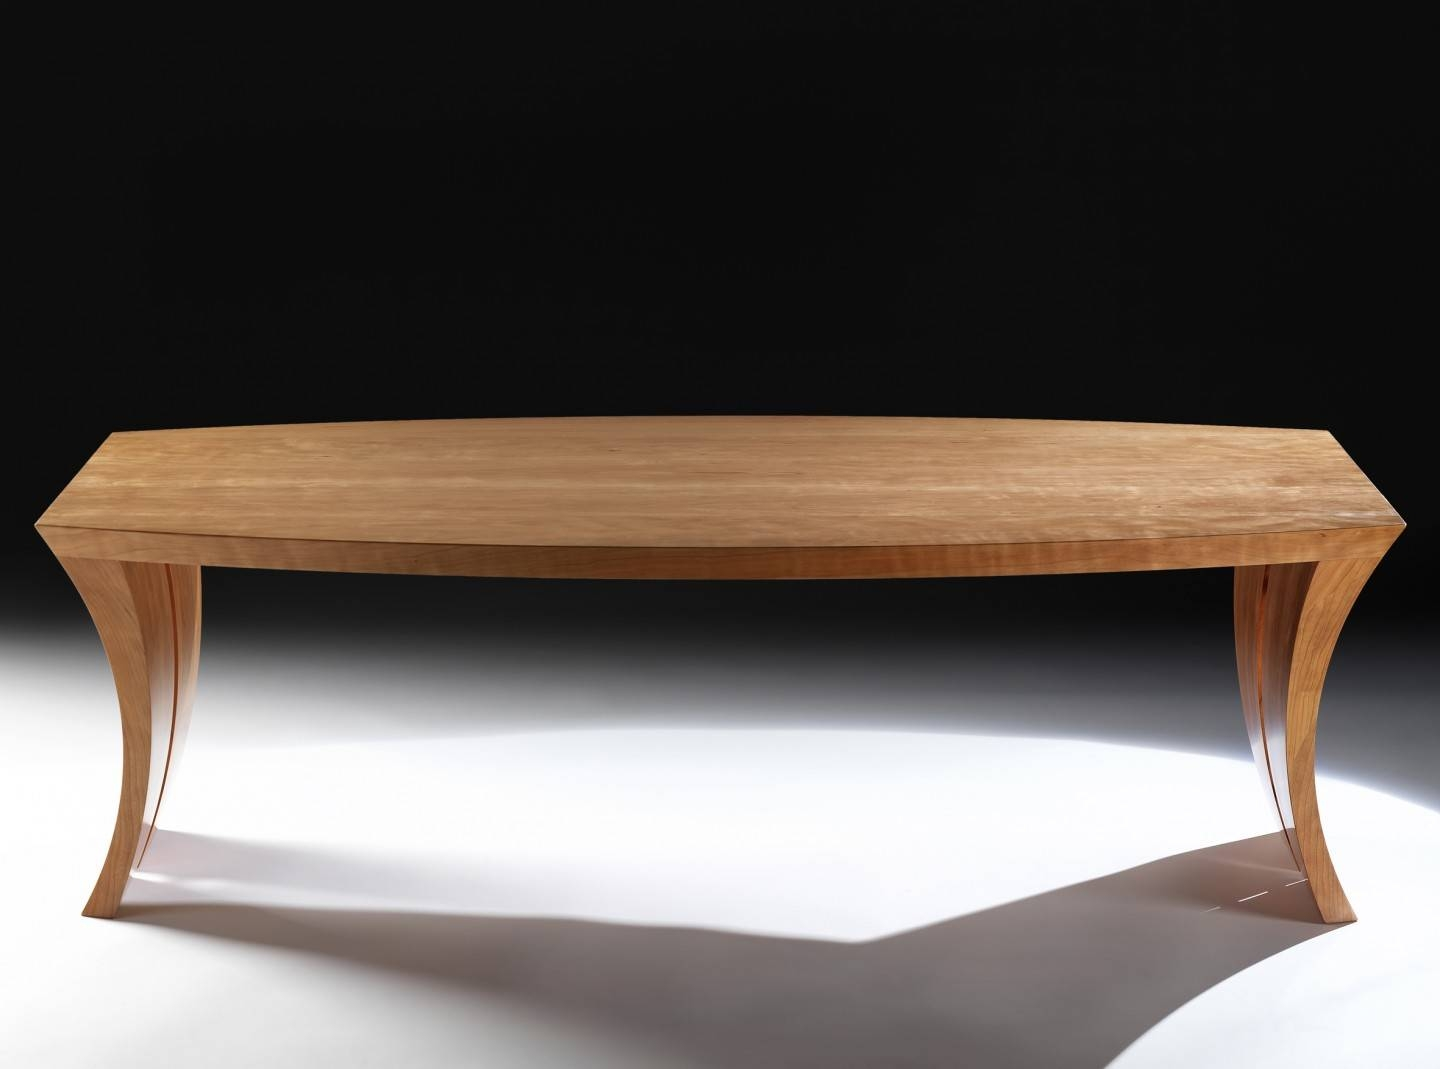 Contemporary Bespoke Coffee Table pertaining to Bespoke Coffee Tables (Image 20 of 30)